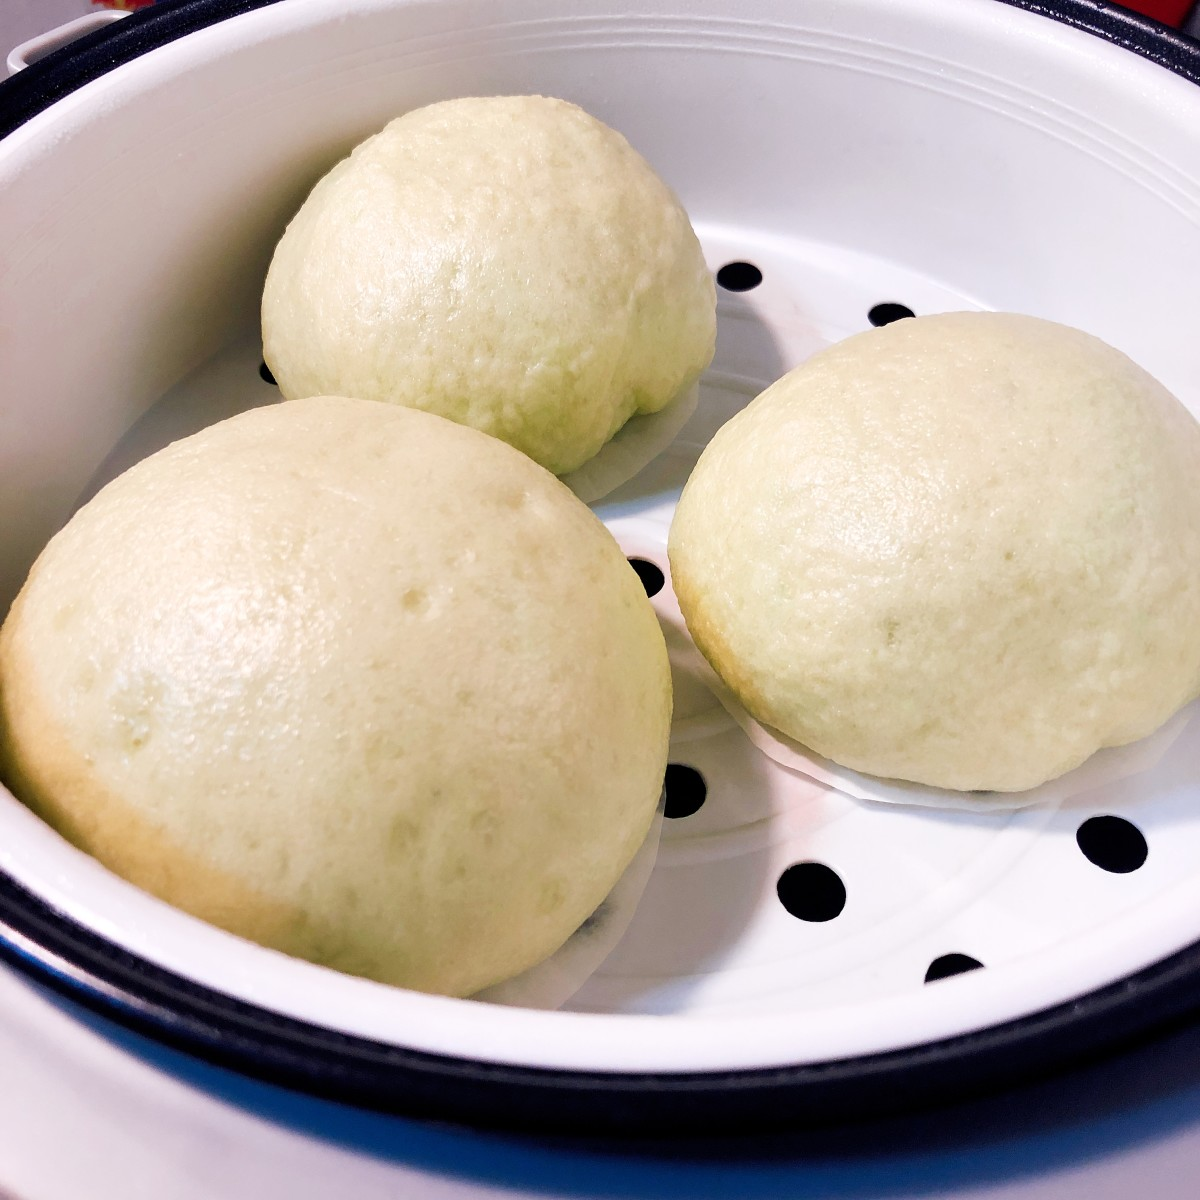 Steamed buns are done.